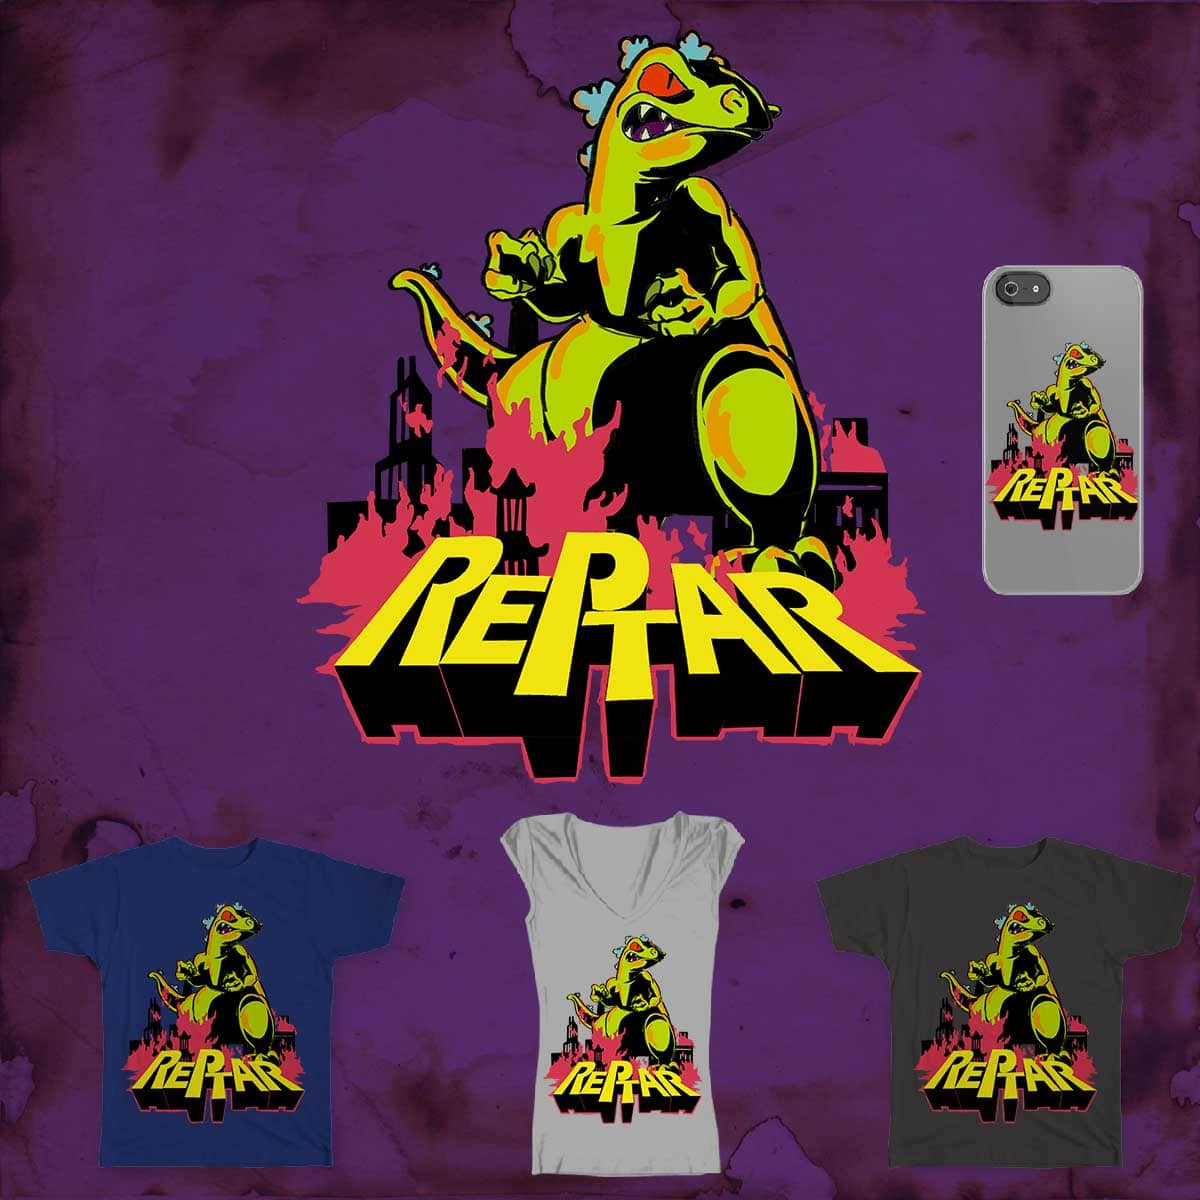 Reptar! by paoloman on Threadless